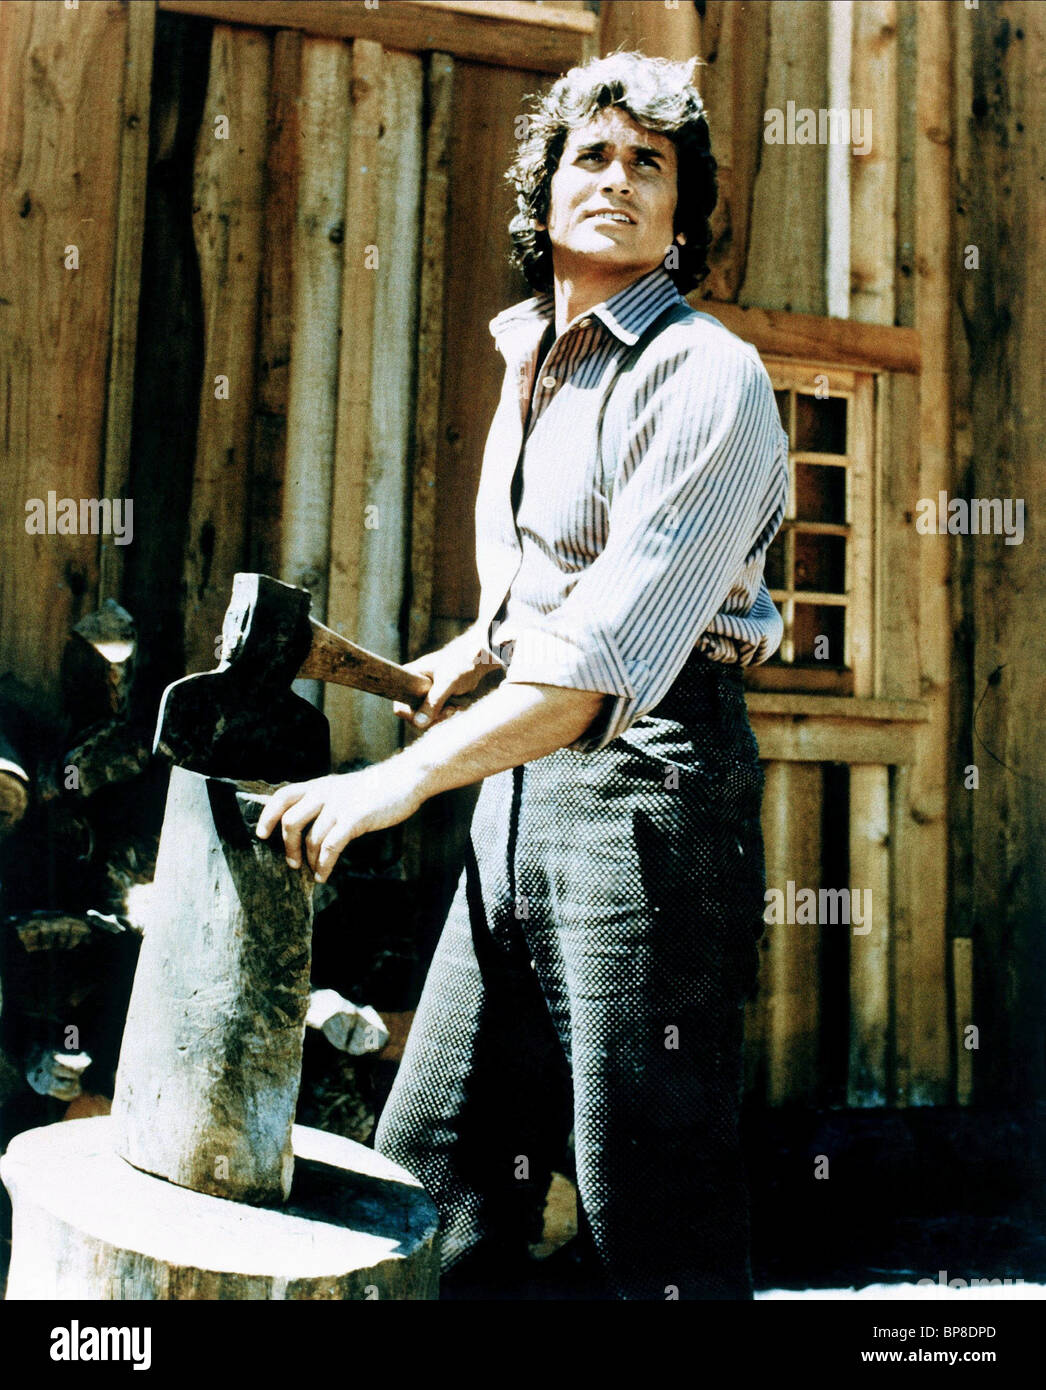 Michael landon little house on the prairie 1974 stock for The landon house